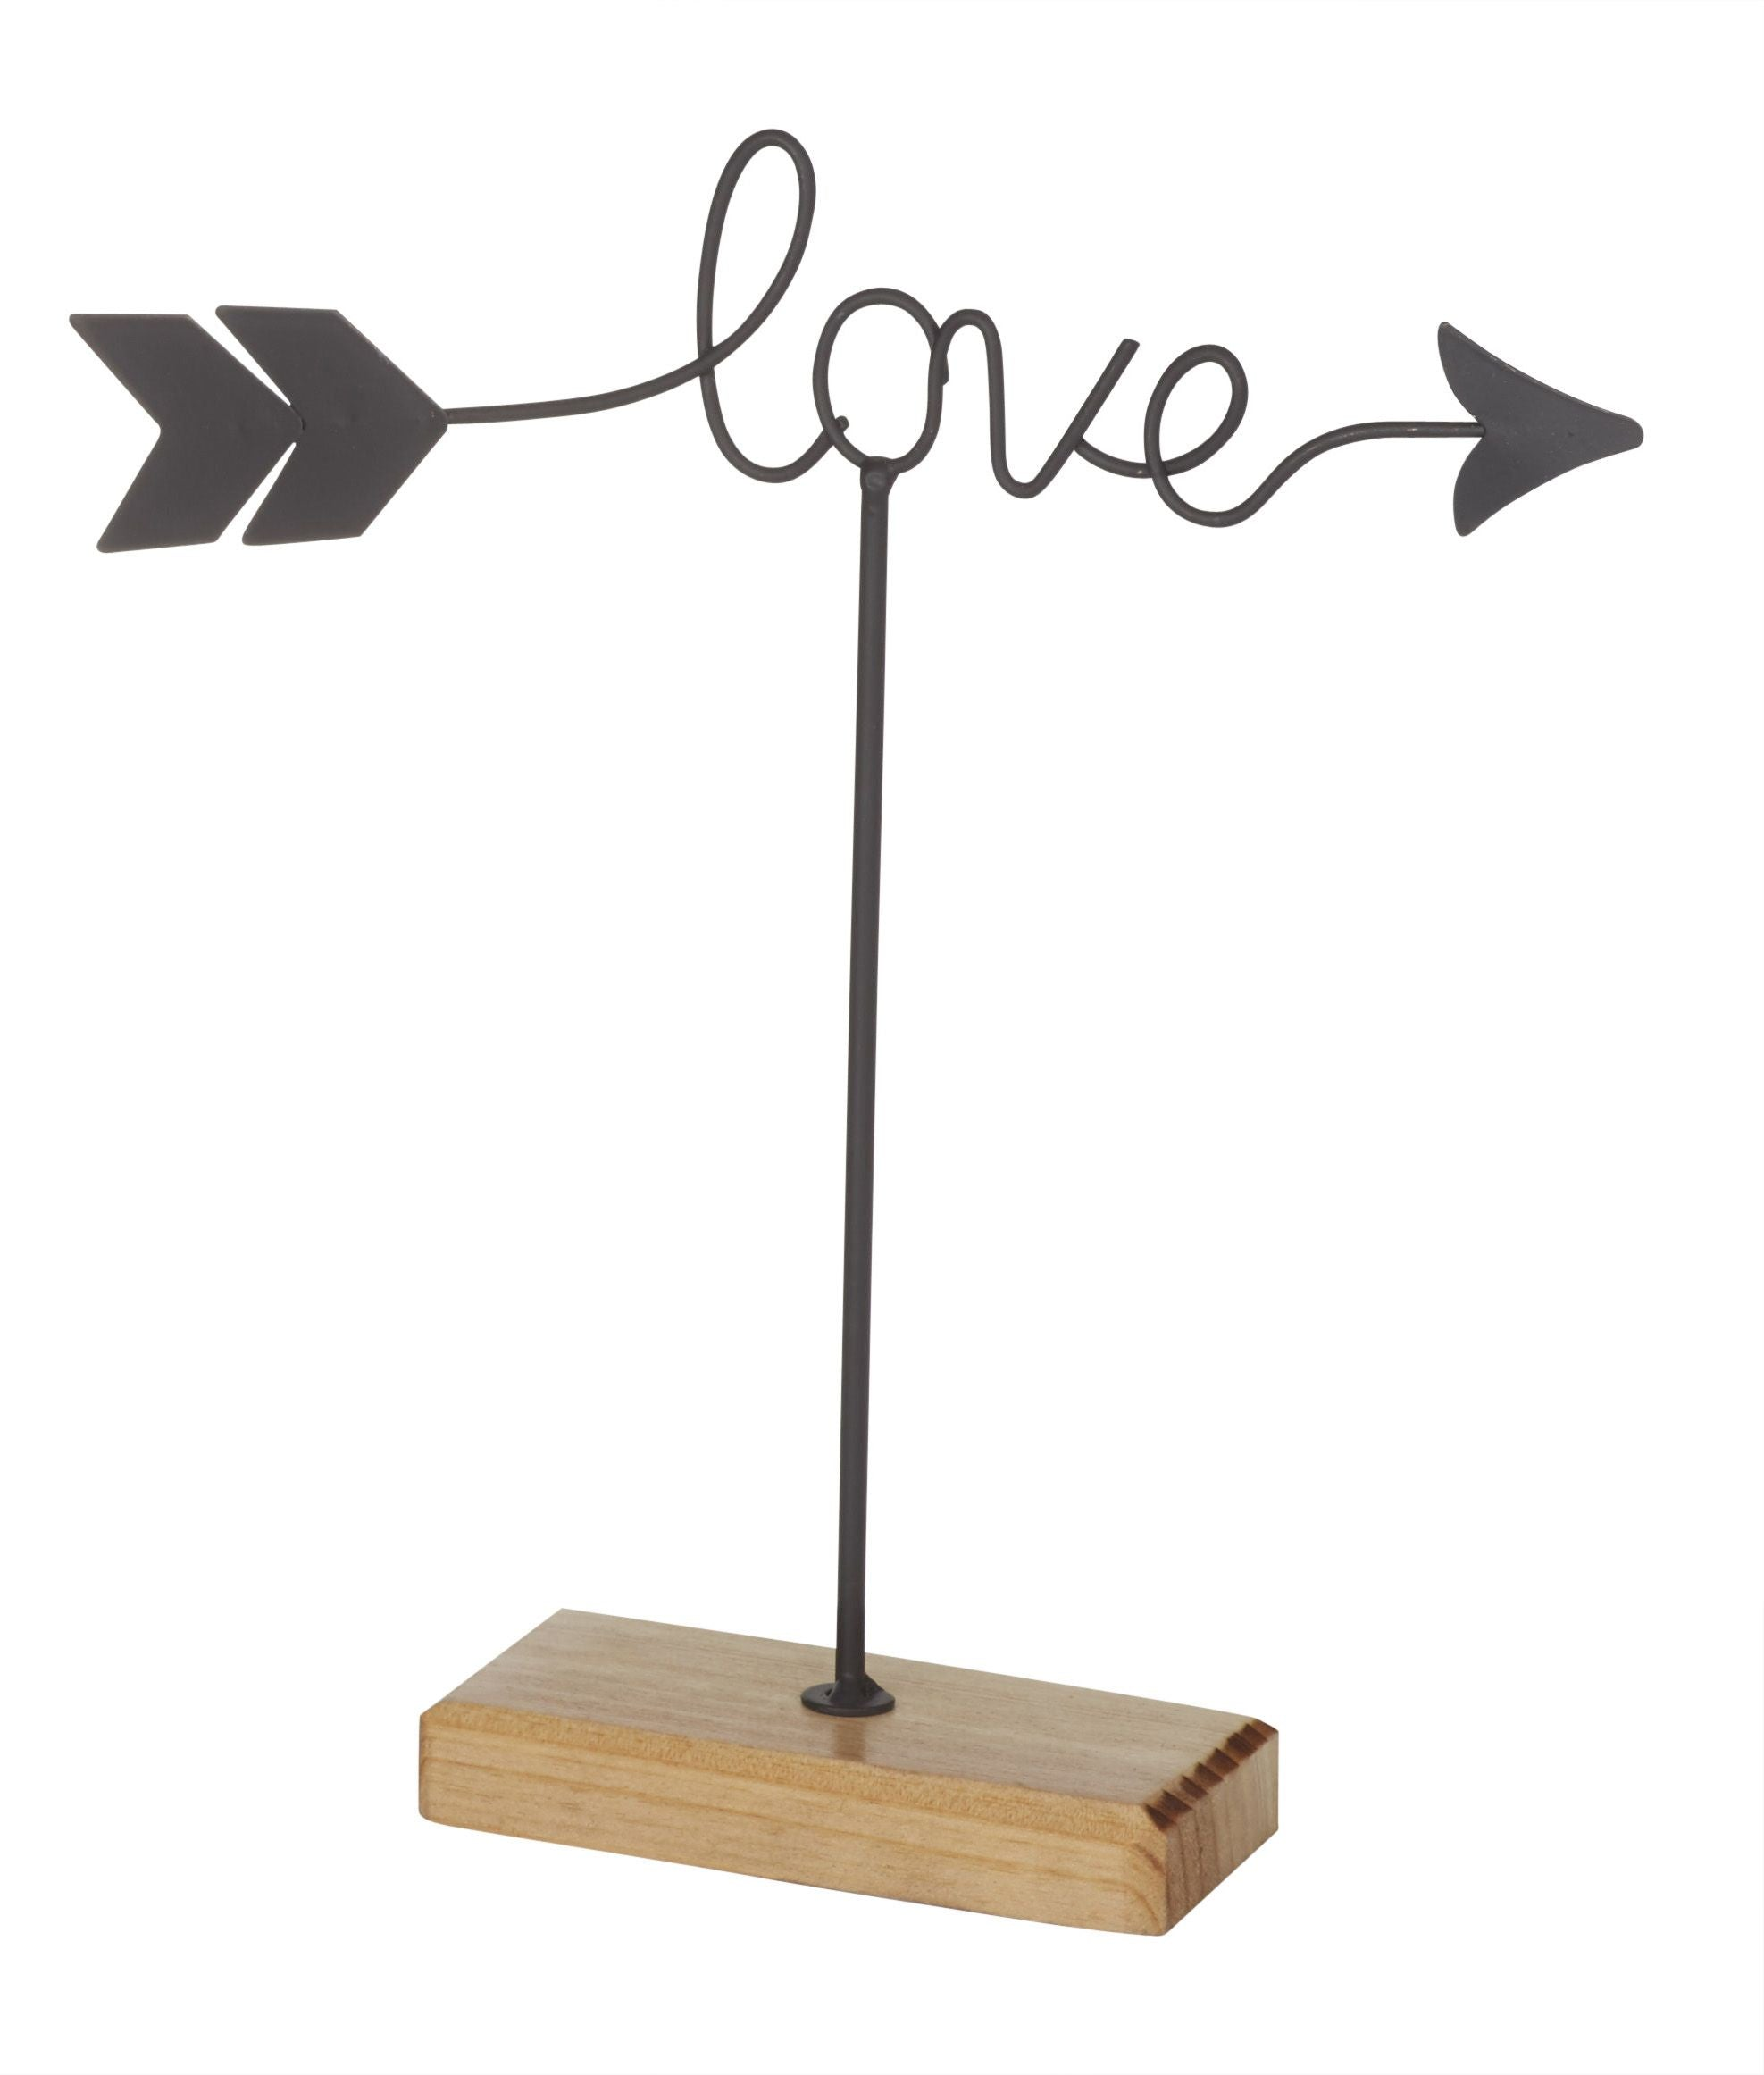 Love sculpture 21.5x22